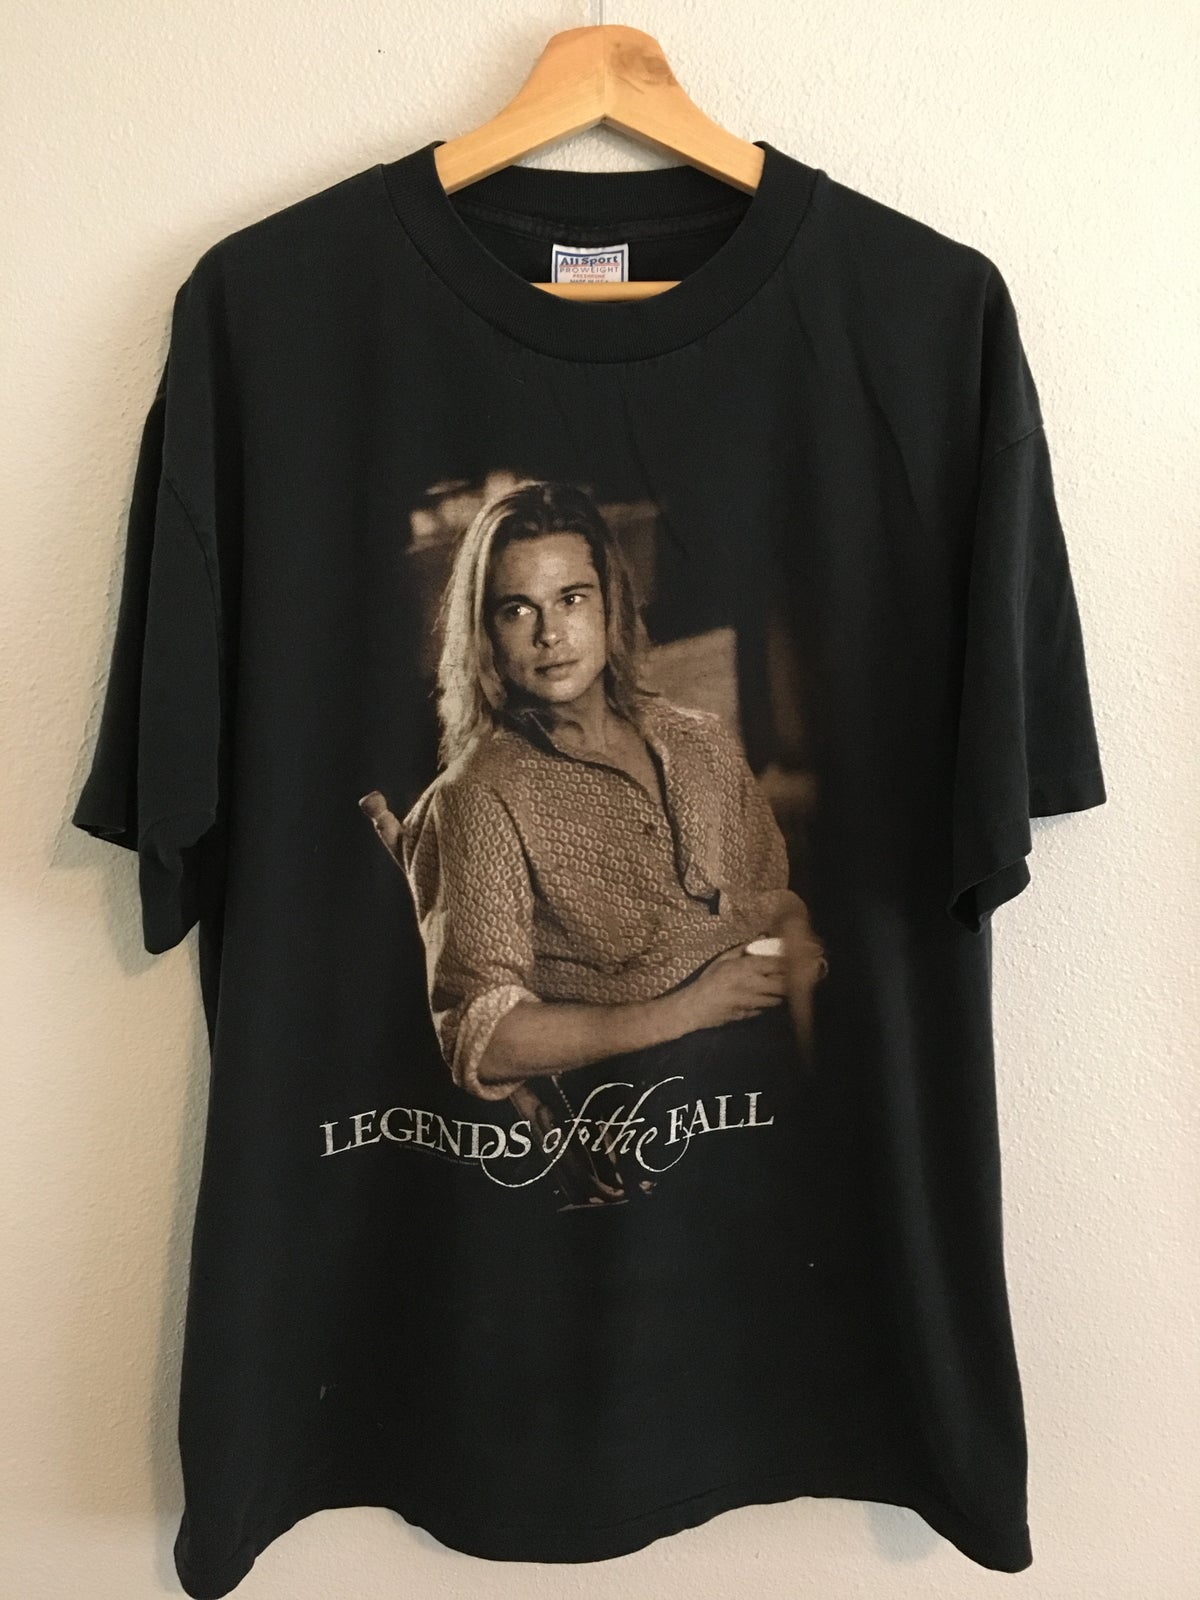 90's Legends Of The Fall Promo Tee